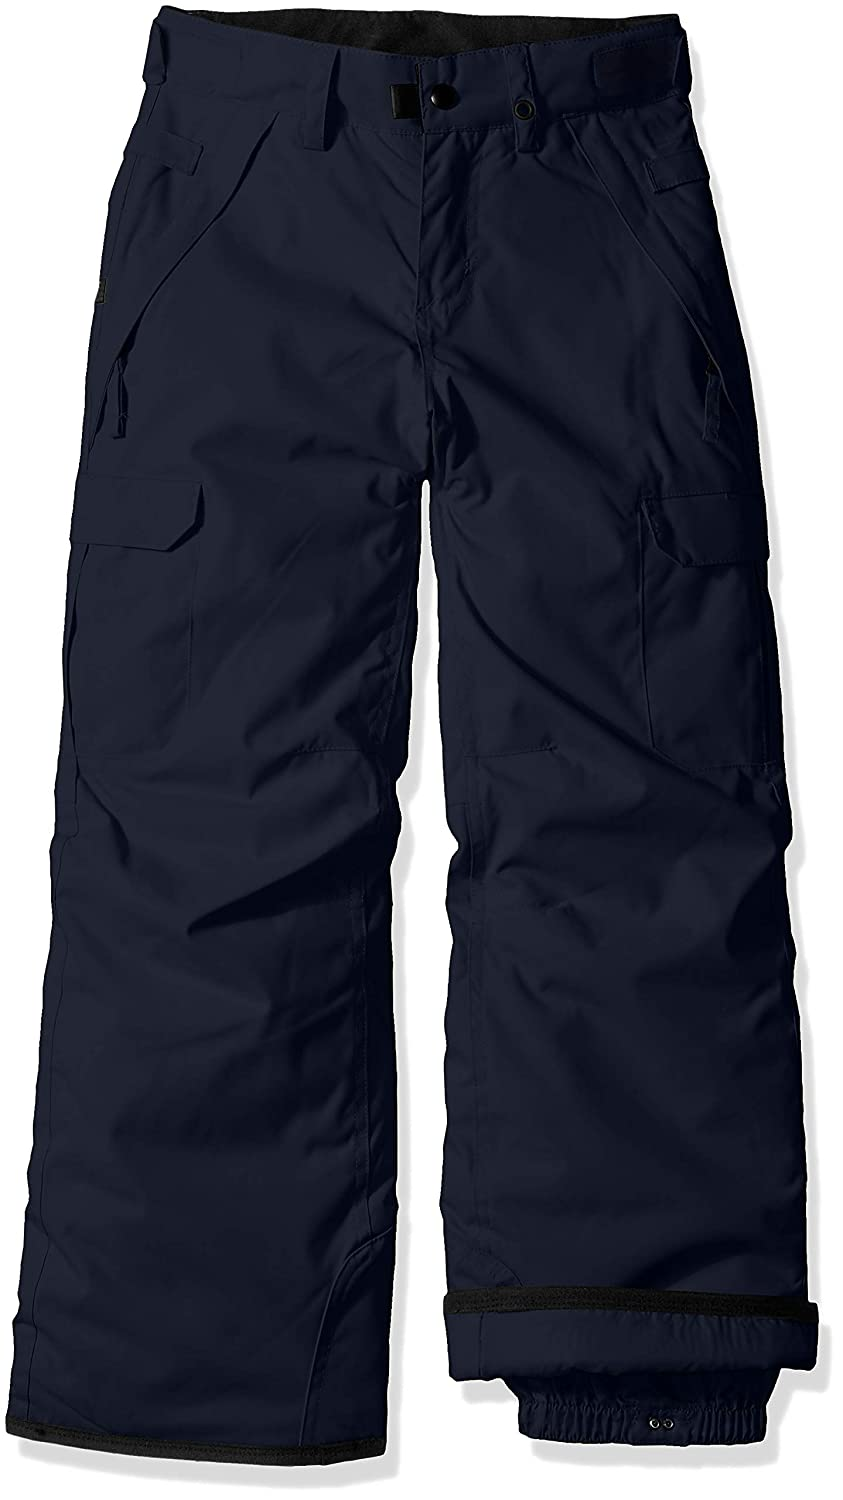 Image of 686 Boys' Infinity Cargo Insulated Waterproof Ski/Snowboard Pants